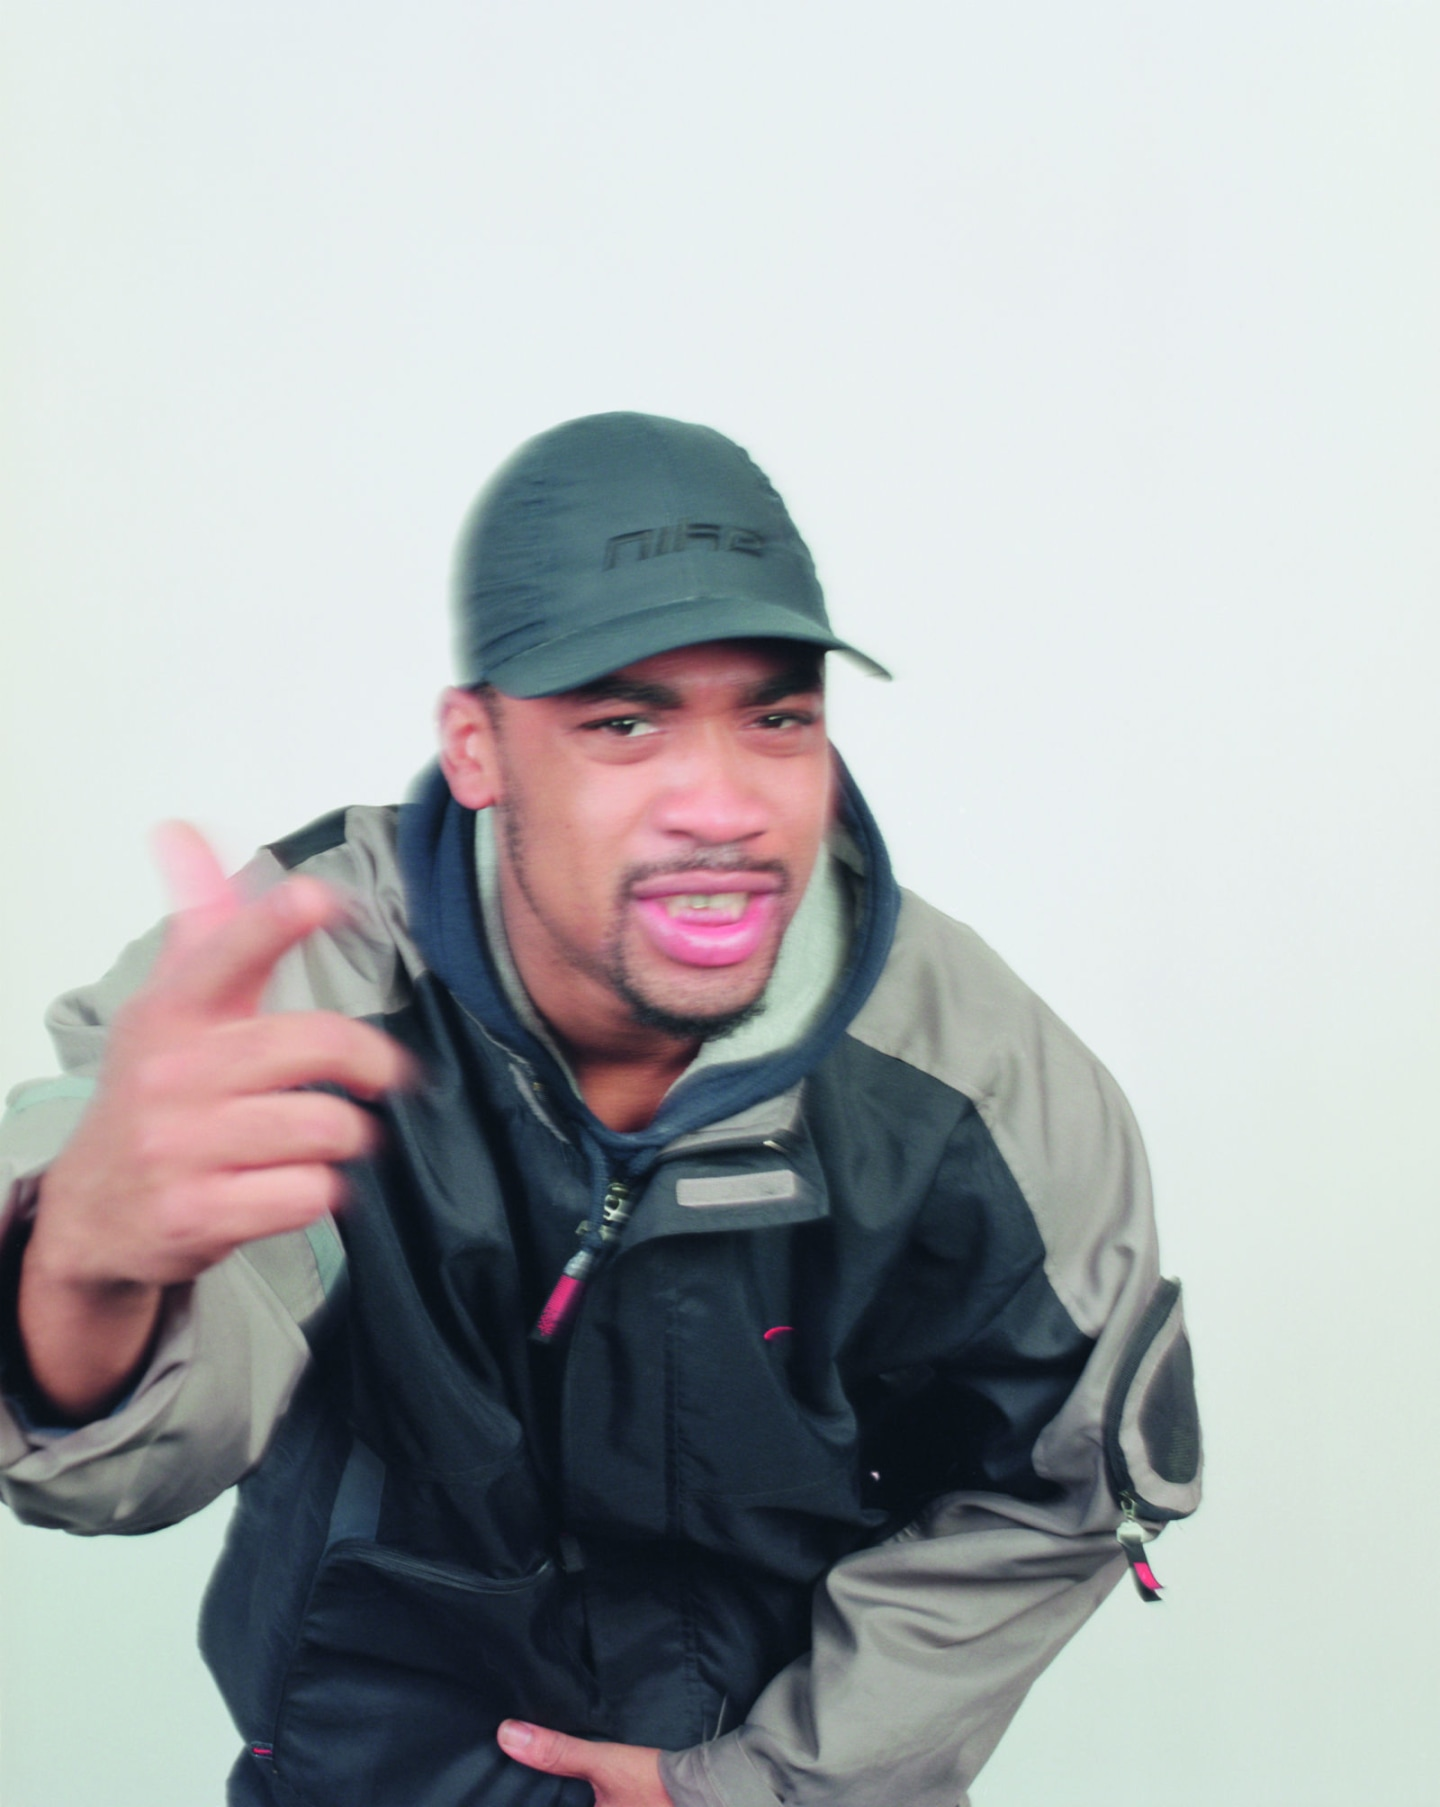 Wiley recalls London's early 2000s music scene and the moment he became an icon